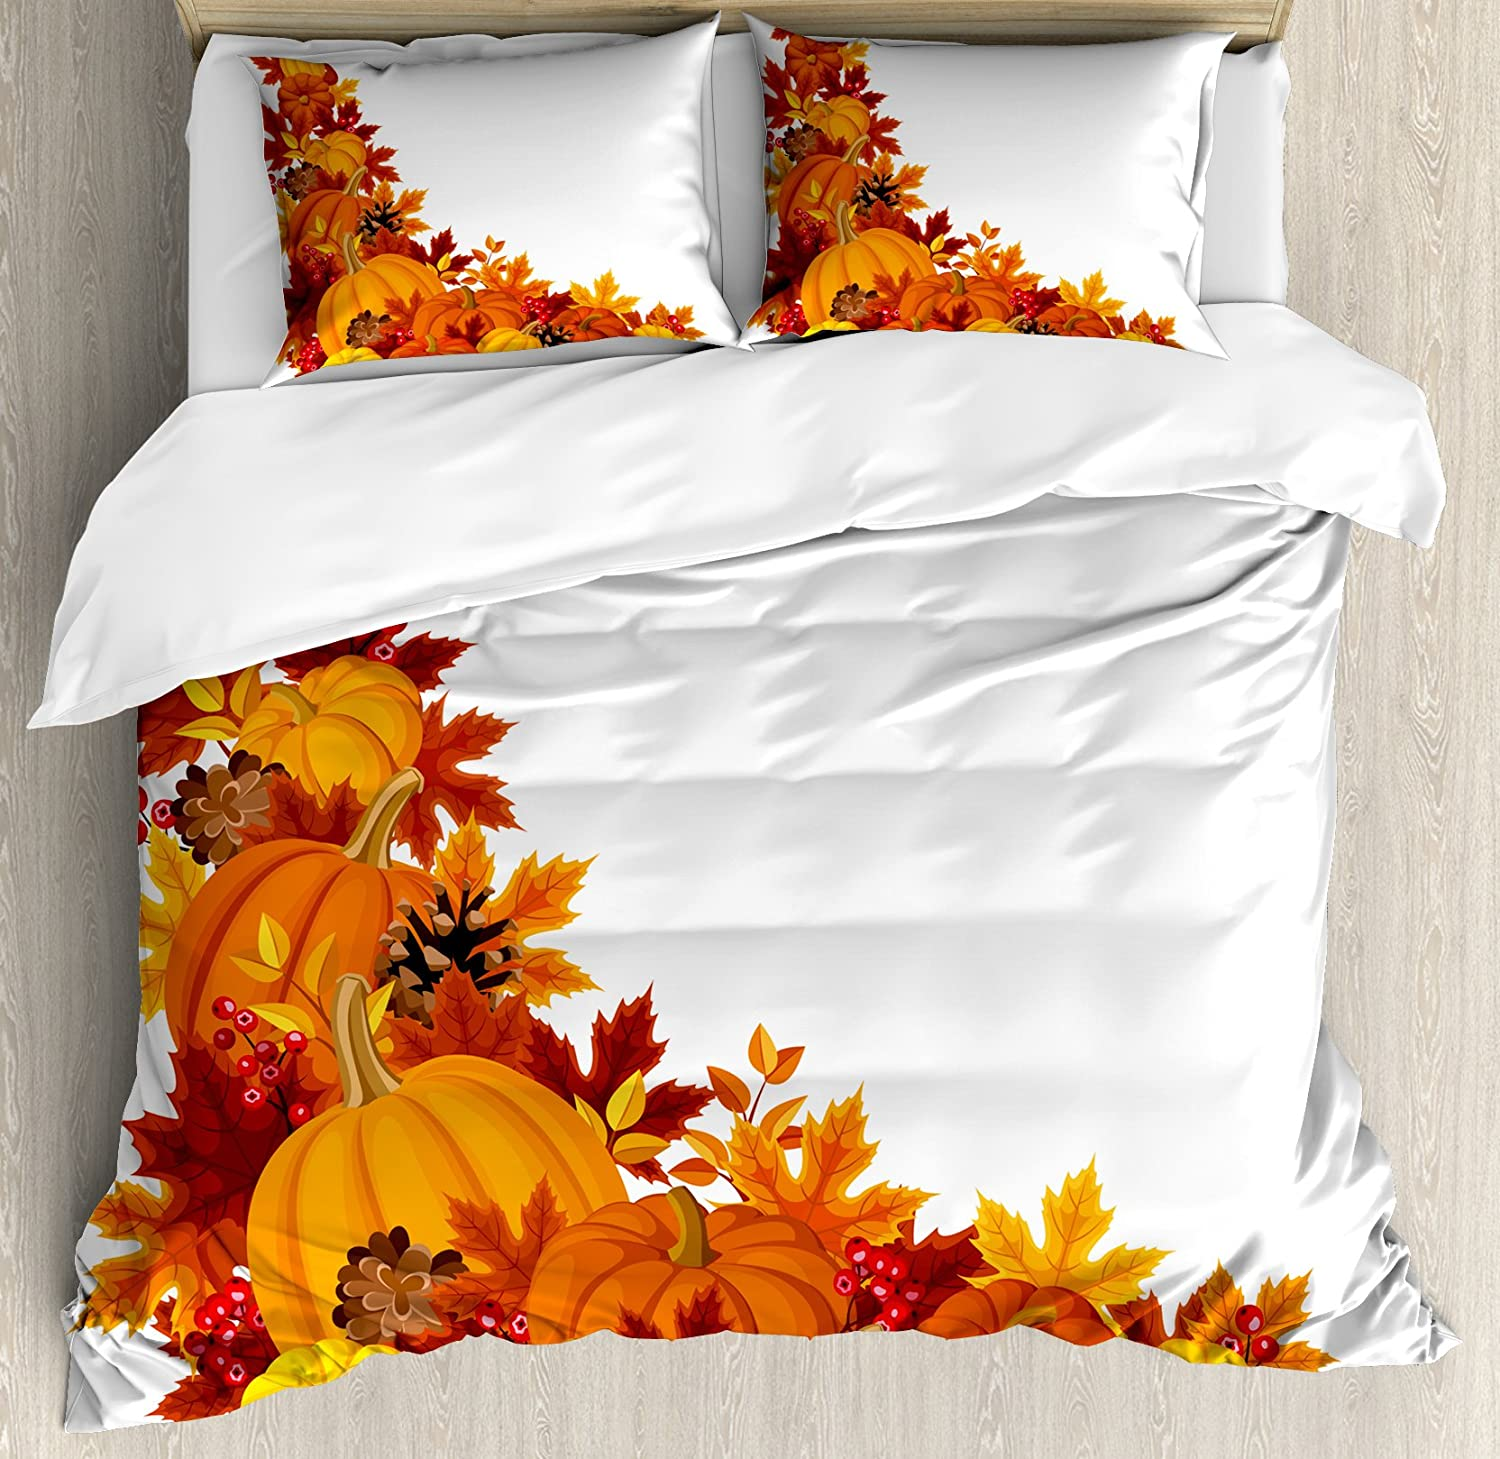 Lunarable Pumpkin Duvet Cover Set, Autumn Leaves and Fruits on Fall Season Arrangement Pine Cone Cranberries, Decorative 3 Piece Bedding Set with 2 Pillow Shams, Queen Size, Orange Yellow